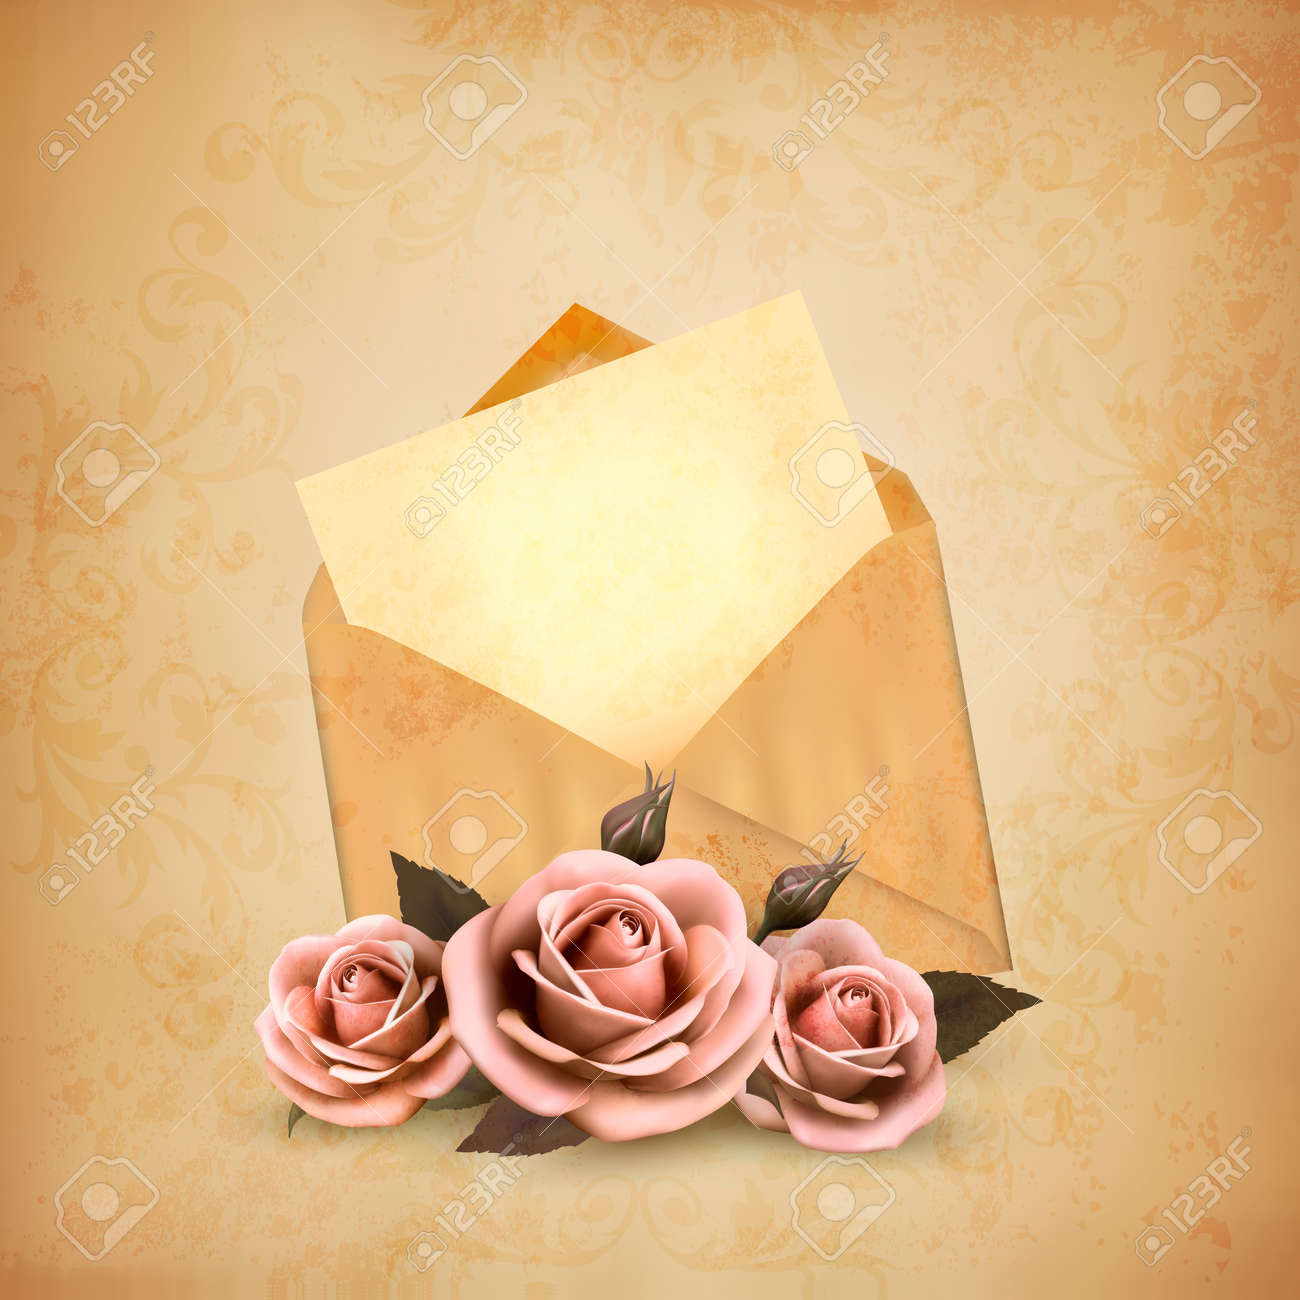 three roses in front of an old envelope with a letter love letter concept